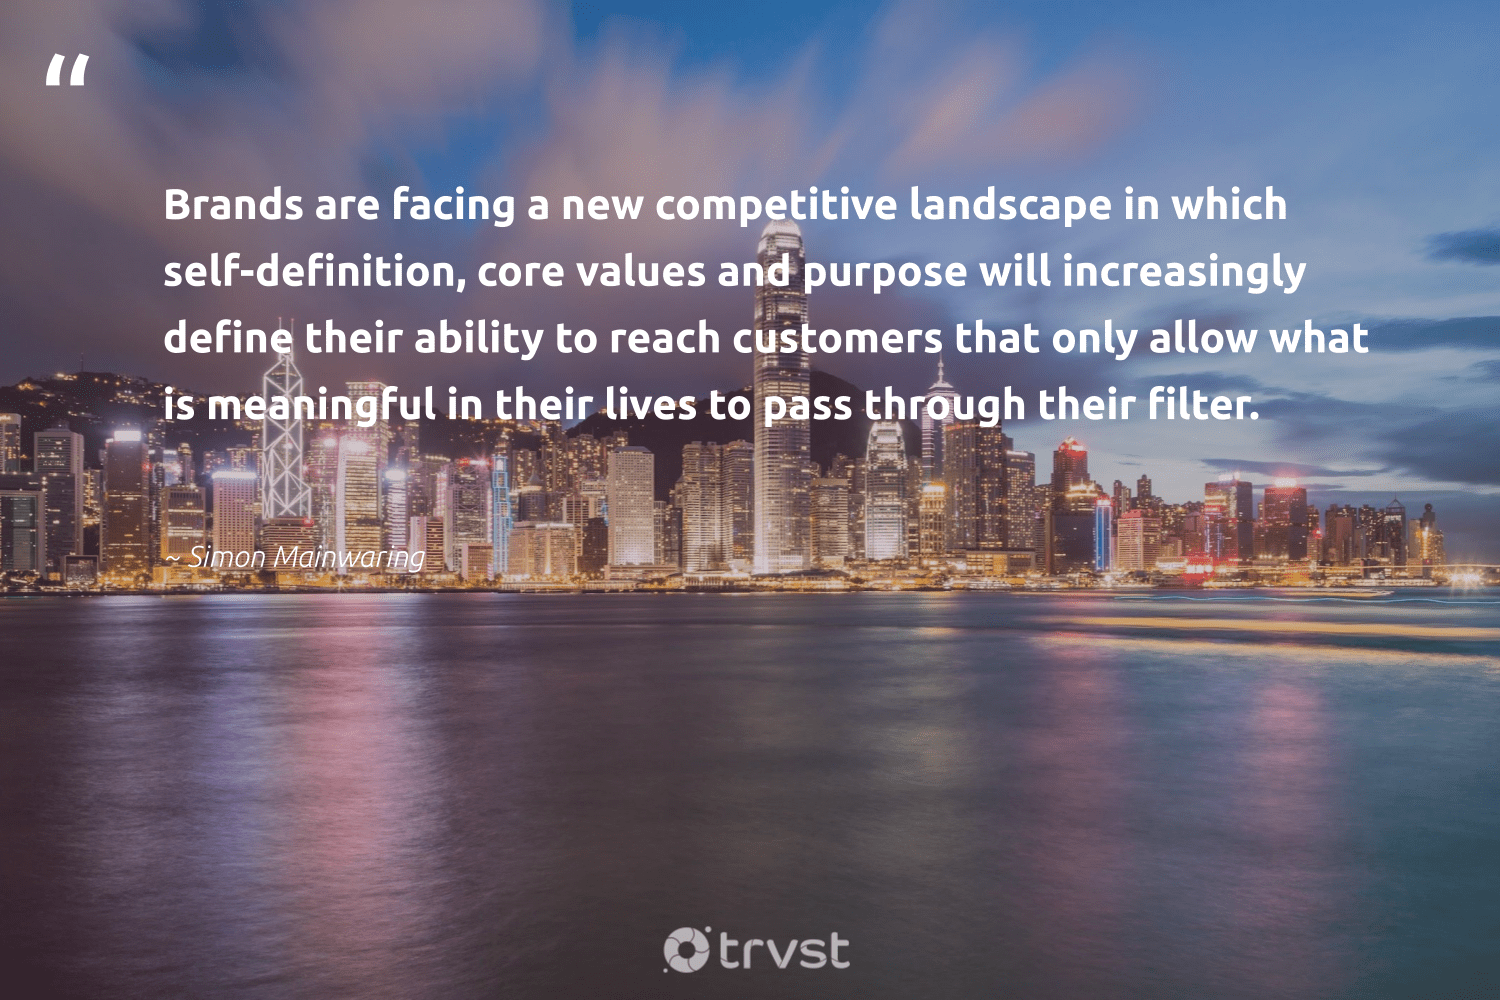 """""""Brands are facing a new competitive landscape in which self-definition, core values and purpose will increasingly define their ability to reach customers that only allow what is meaningful in their lives to pass through their filter.""""  - Simon Mainwaring #trvst #quotes #purpose #customers #findingpupose #dogood #begreat #bethechange #findpurpose #ethicalbusiness #nevergiveup #socialchange"""